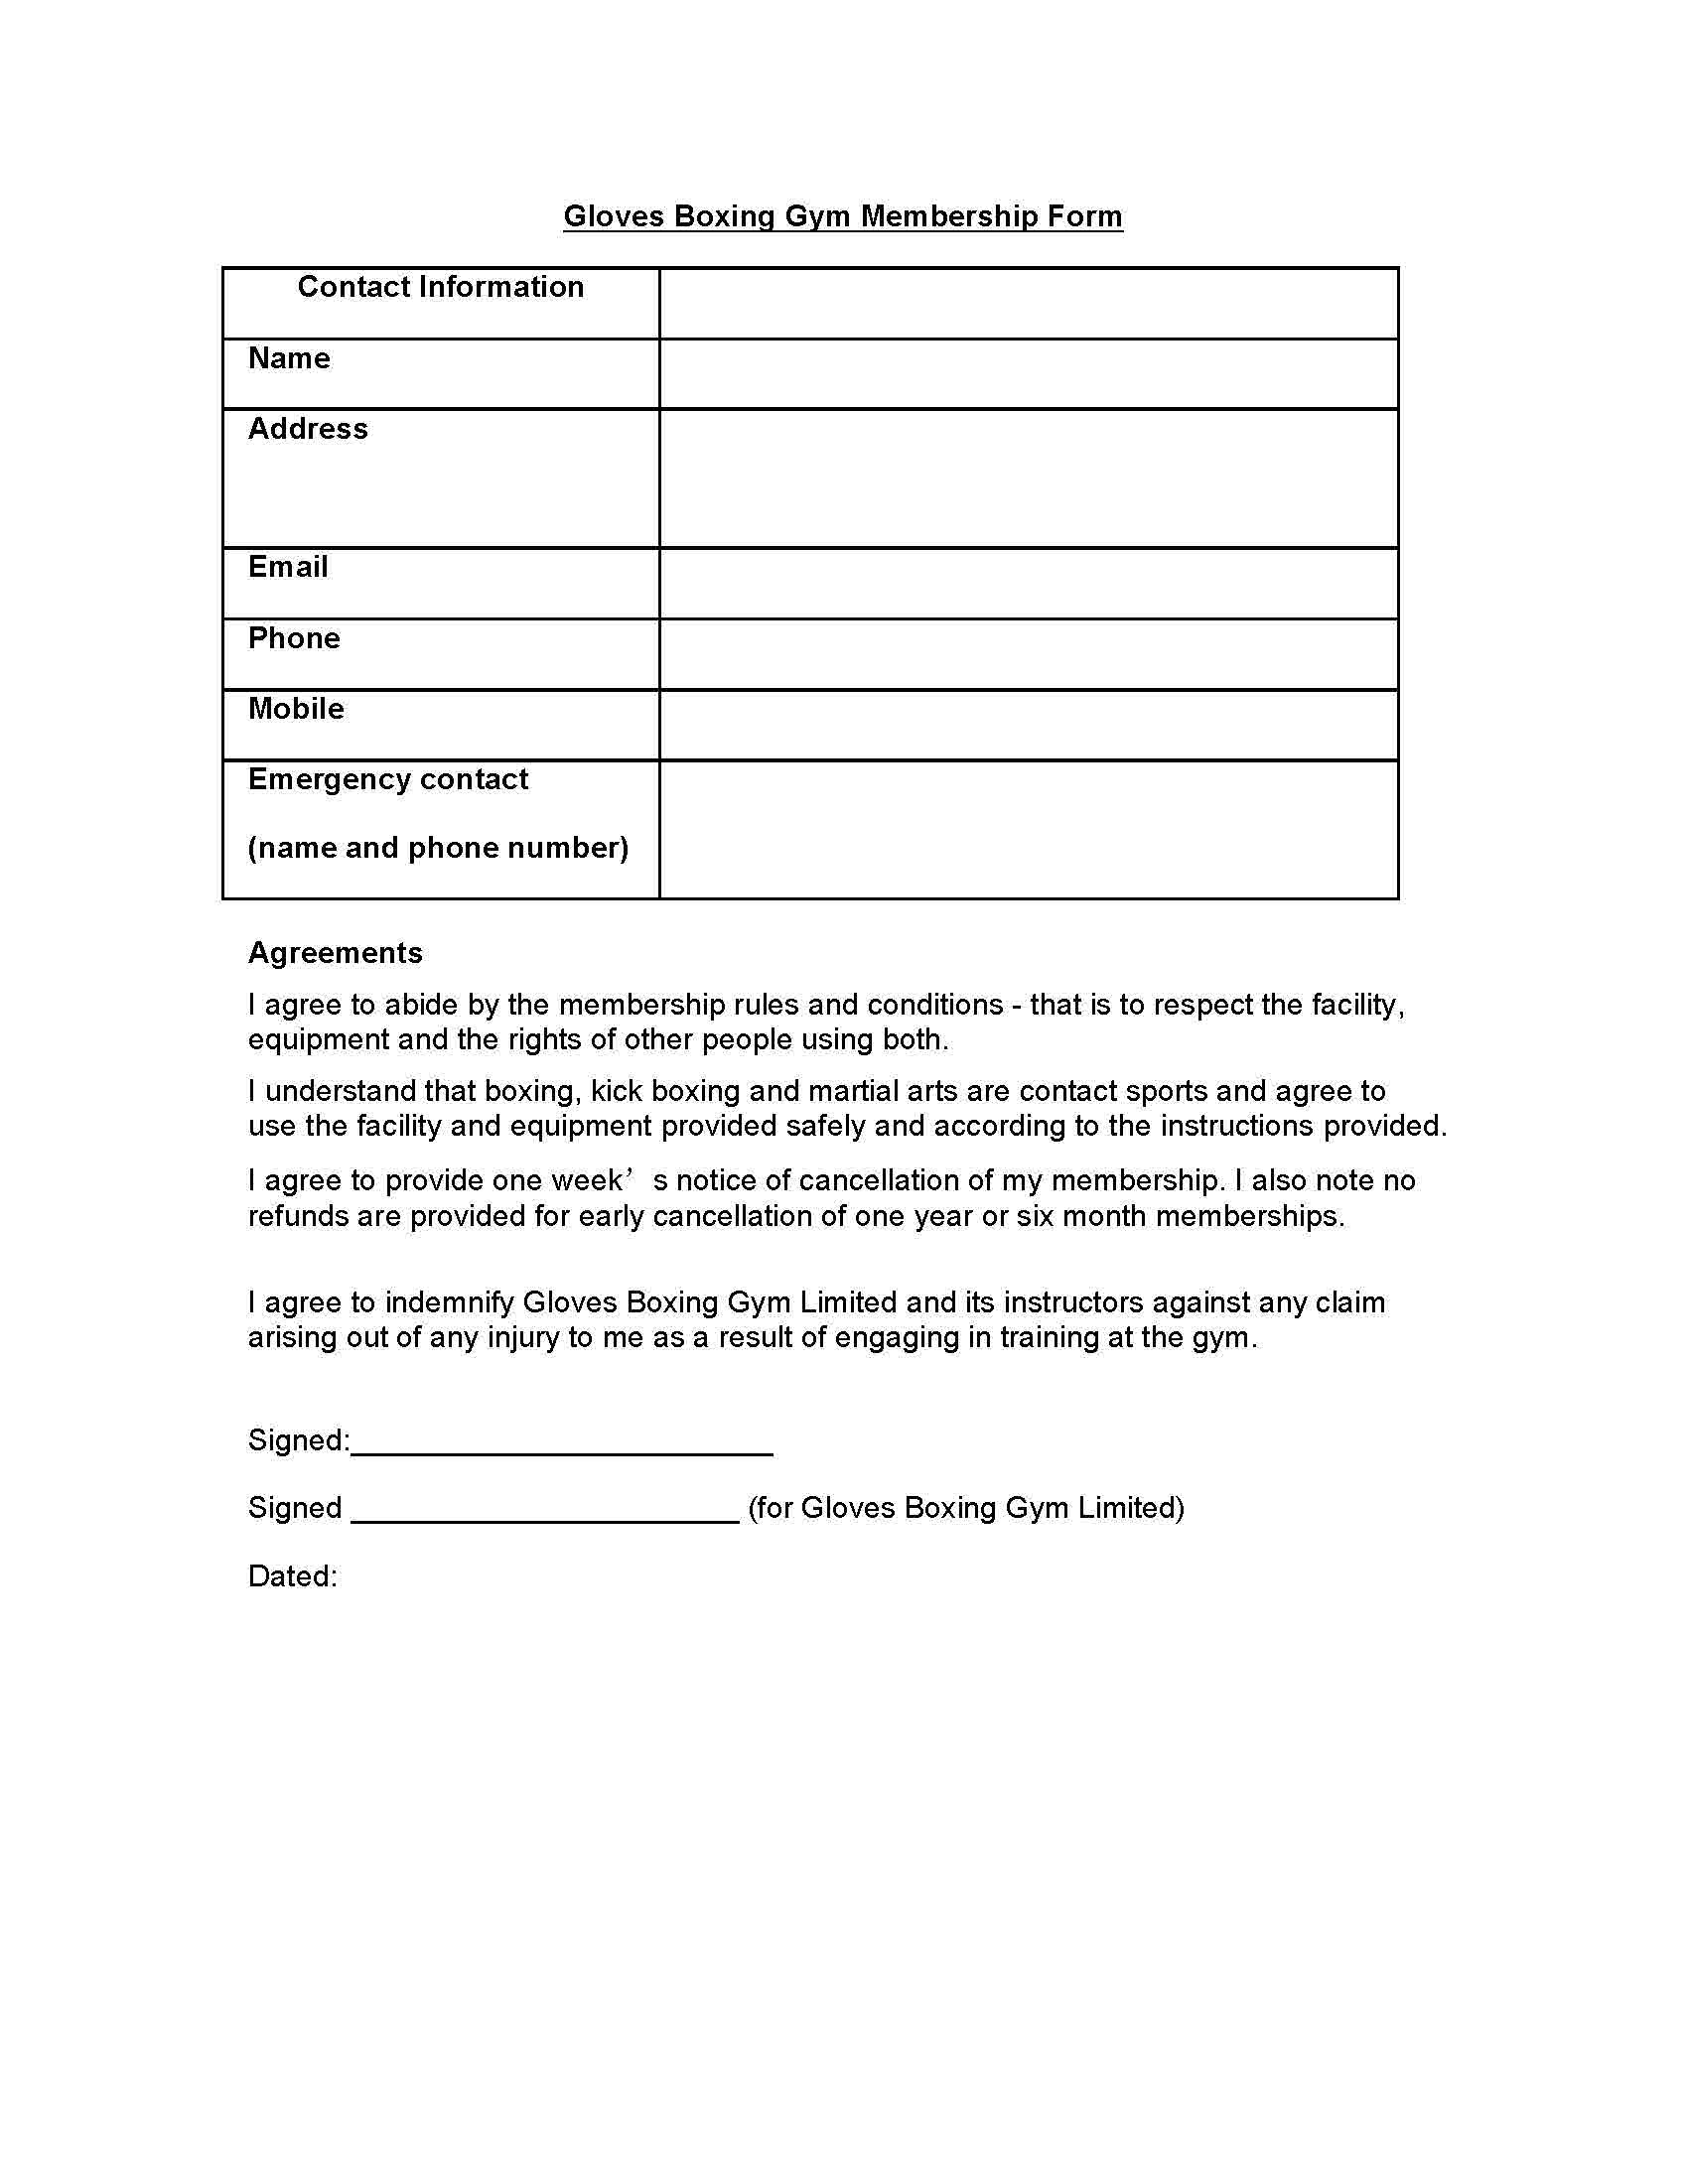 Gloves Boxing Gym Membership Form Contract Template Pdf for Printable Boxing Certificate Template